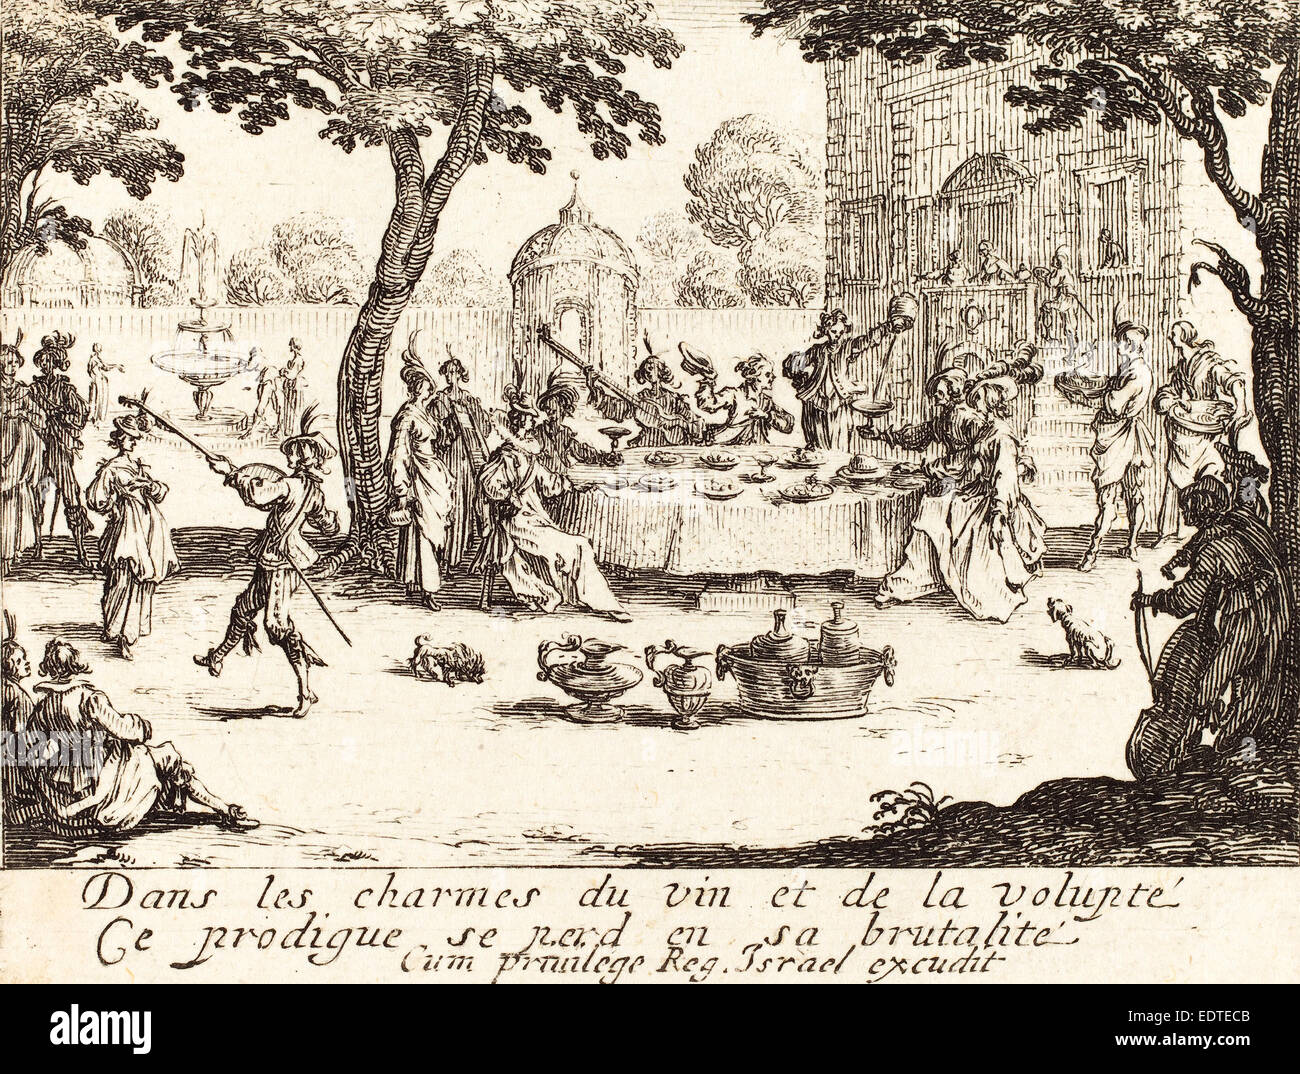 Jacques Callot (French, 1592 - 1635), The Dissipation, etching Stock Photo